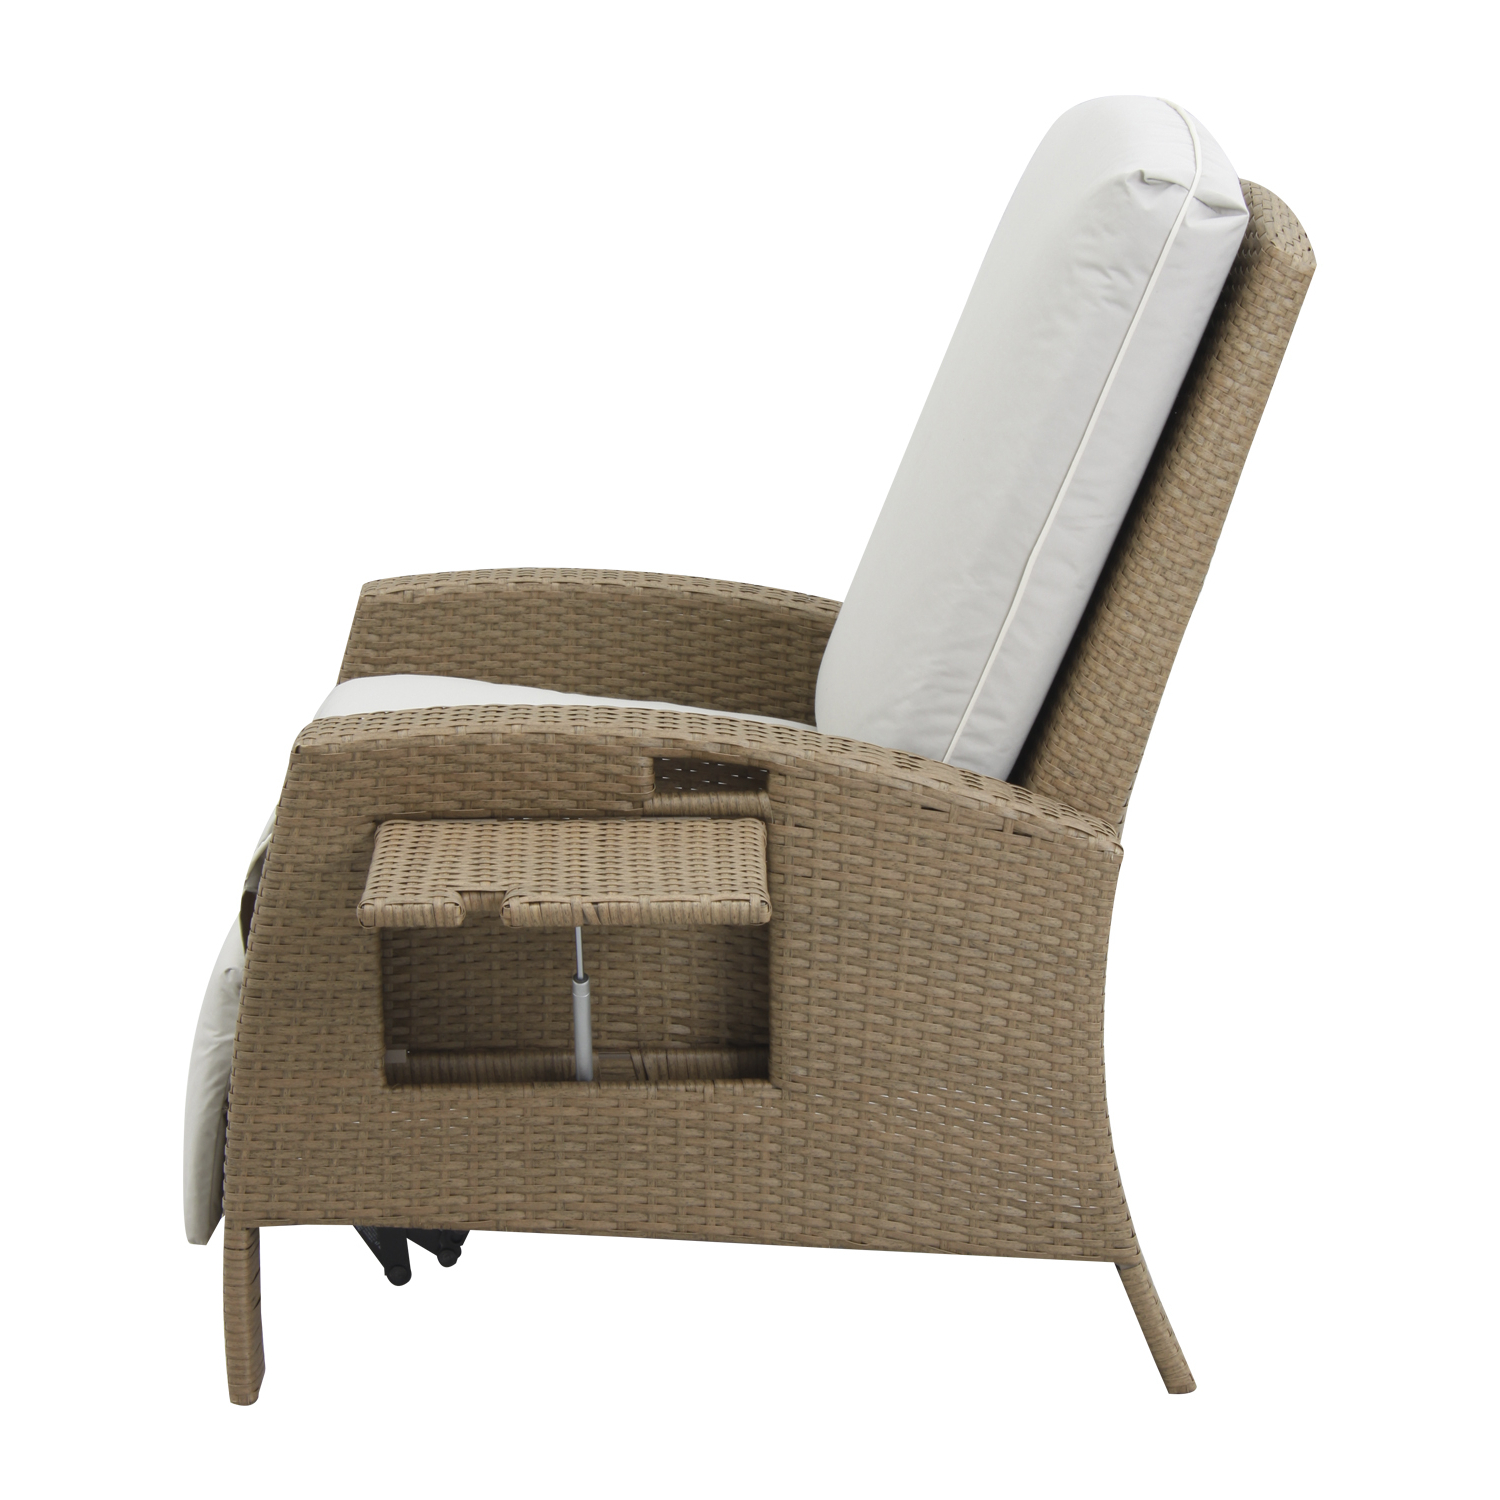 Outdoor Adjustable Rattan Wicker Recliner Chairs With Cushion Throughout Recent Outsunny Rattan Wicker Outdoor Adjustable Recliner Lounge Chair (Gallery 4 of 25)